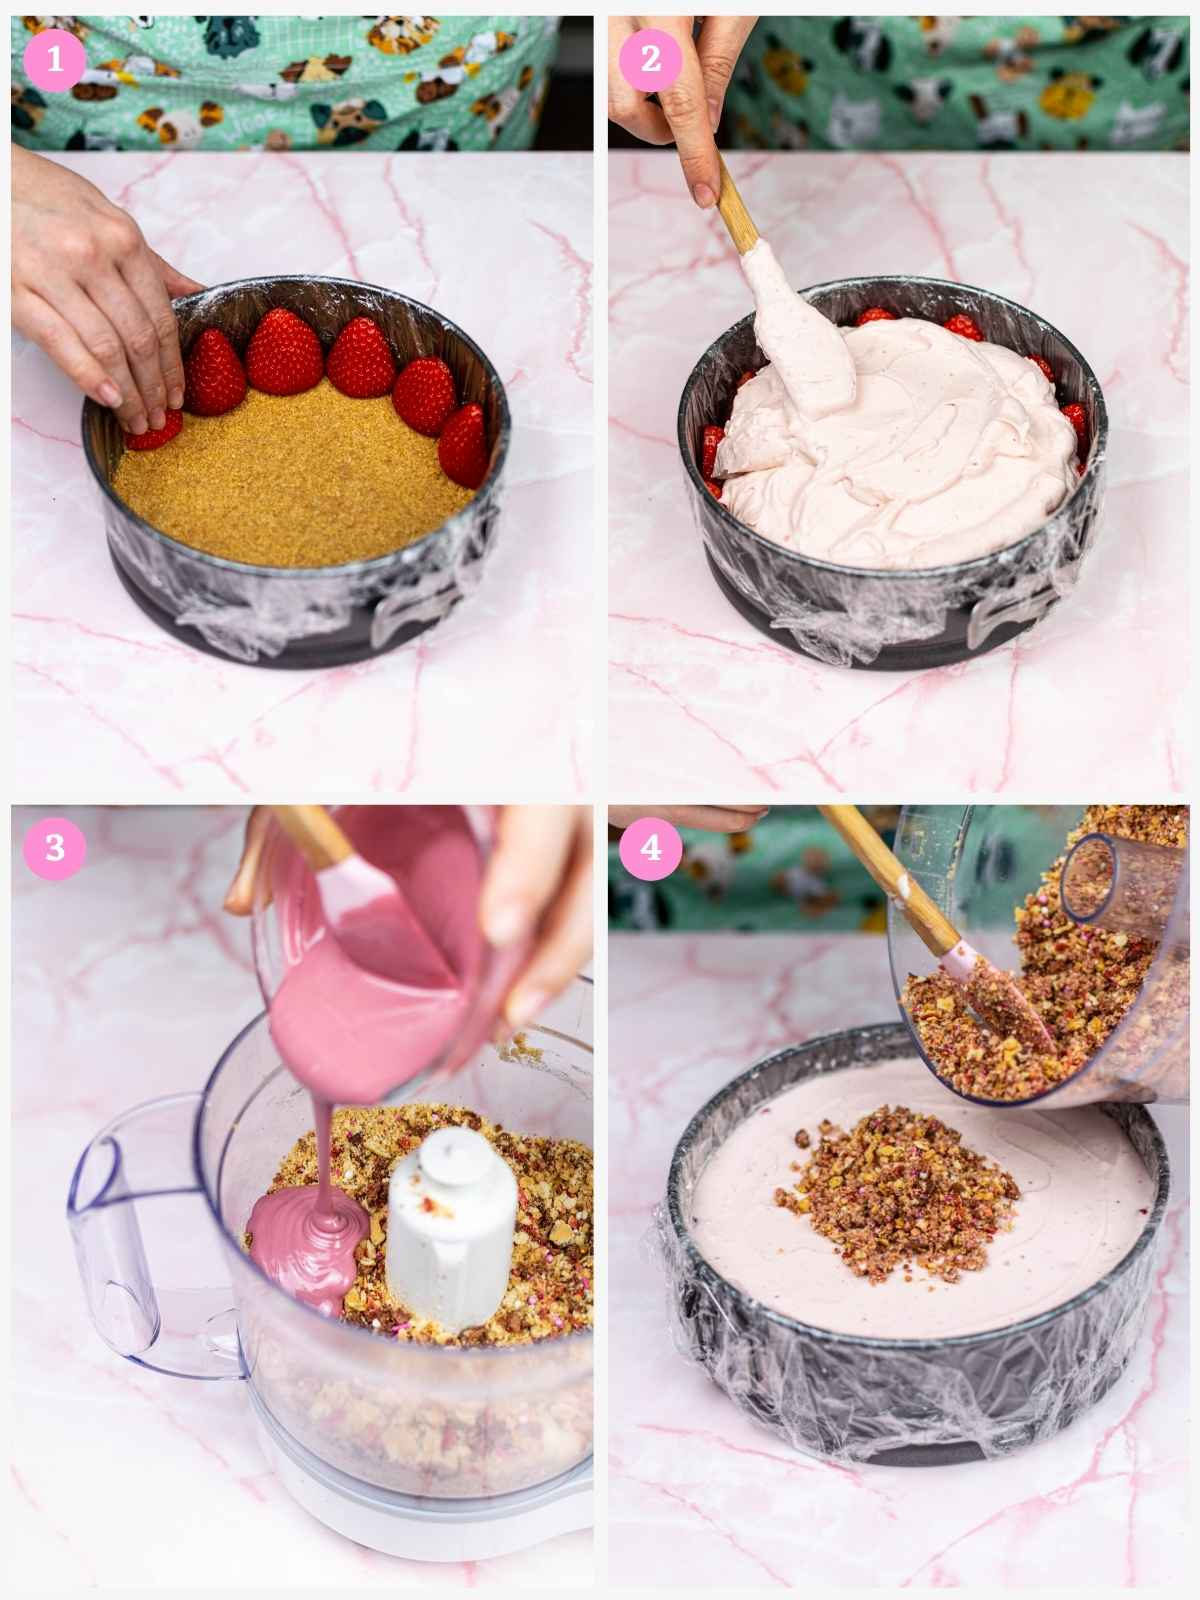 Collage of 4 images showing how to assemble strawberry cheesecake